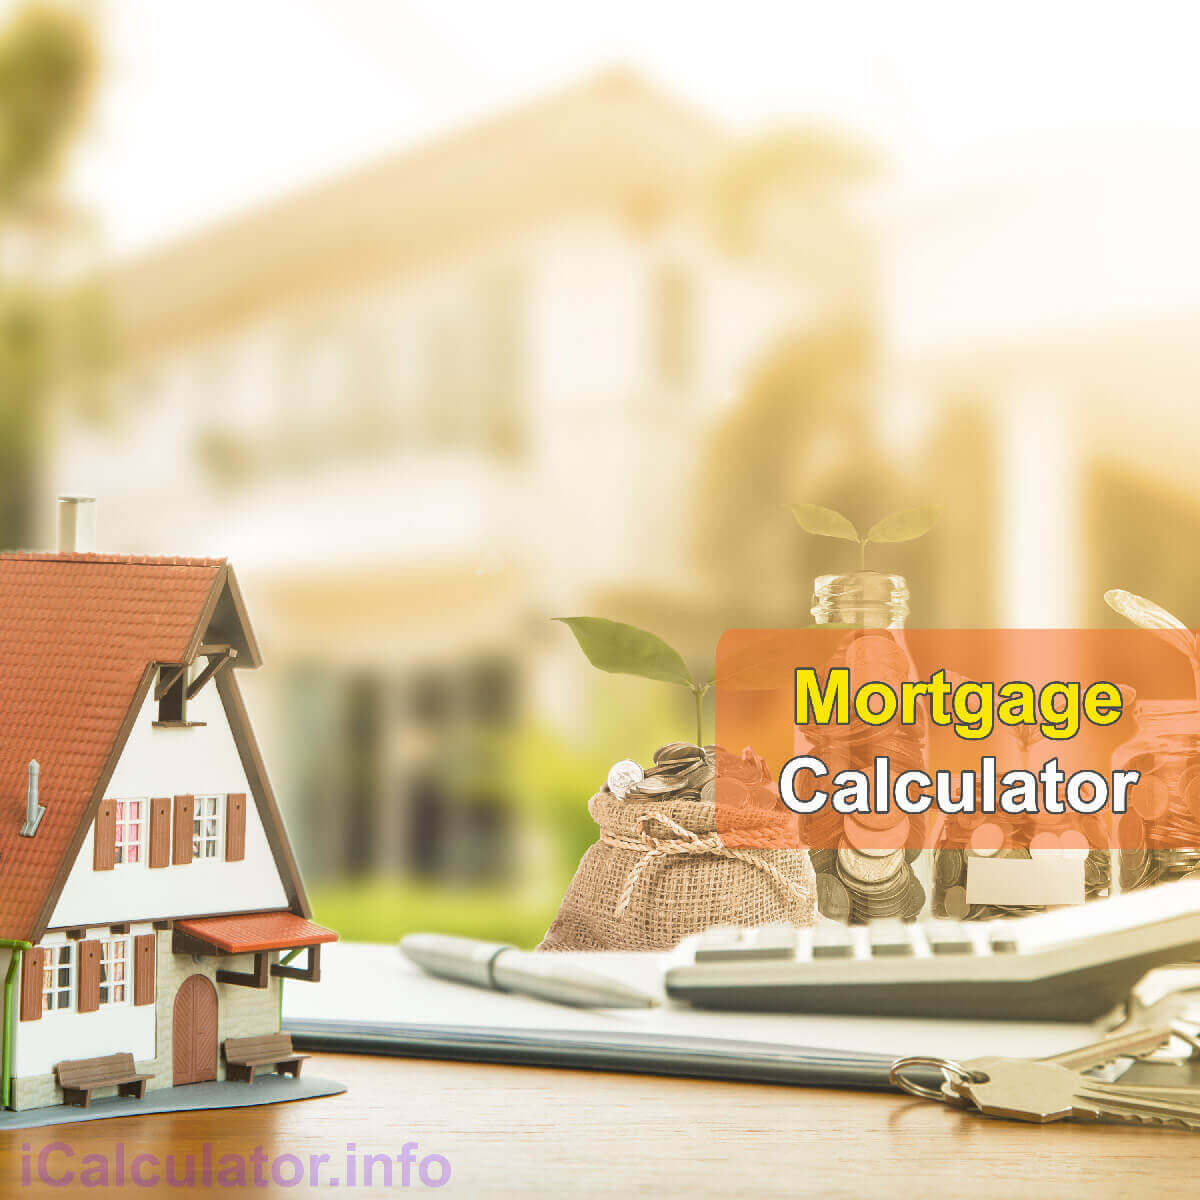 Mortgage Calculator. This image shows a beautiful home for a first time buyer, a notepad and a calculator being used to calculate the monthly repayment amount on a £84,000.00 mortgage with a 3.4% mortgage interest rate. Alternatively, people can calculate their monthly mortgage repayments on £84,000.00 at 3.4% using the mortgage calculator by iCalculator Finance Tax Calculator